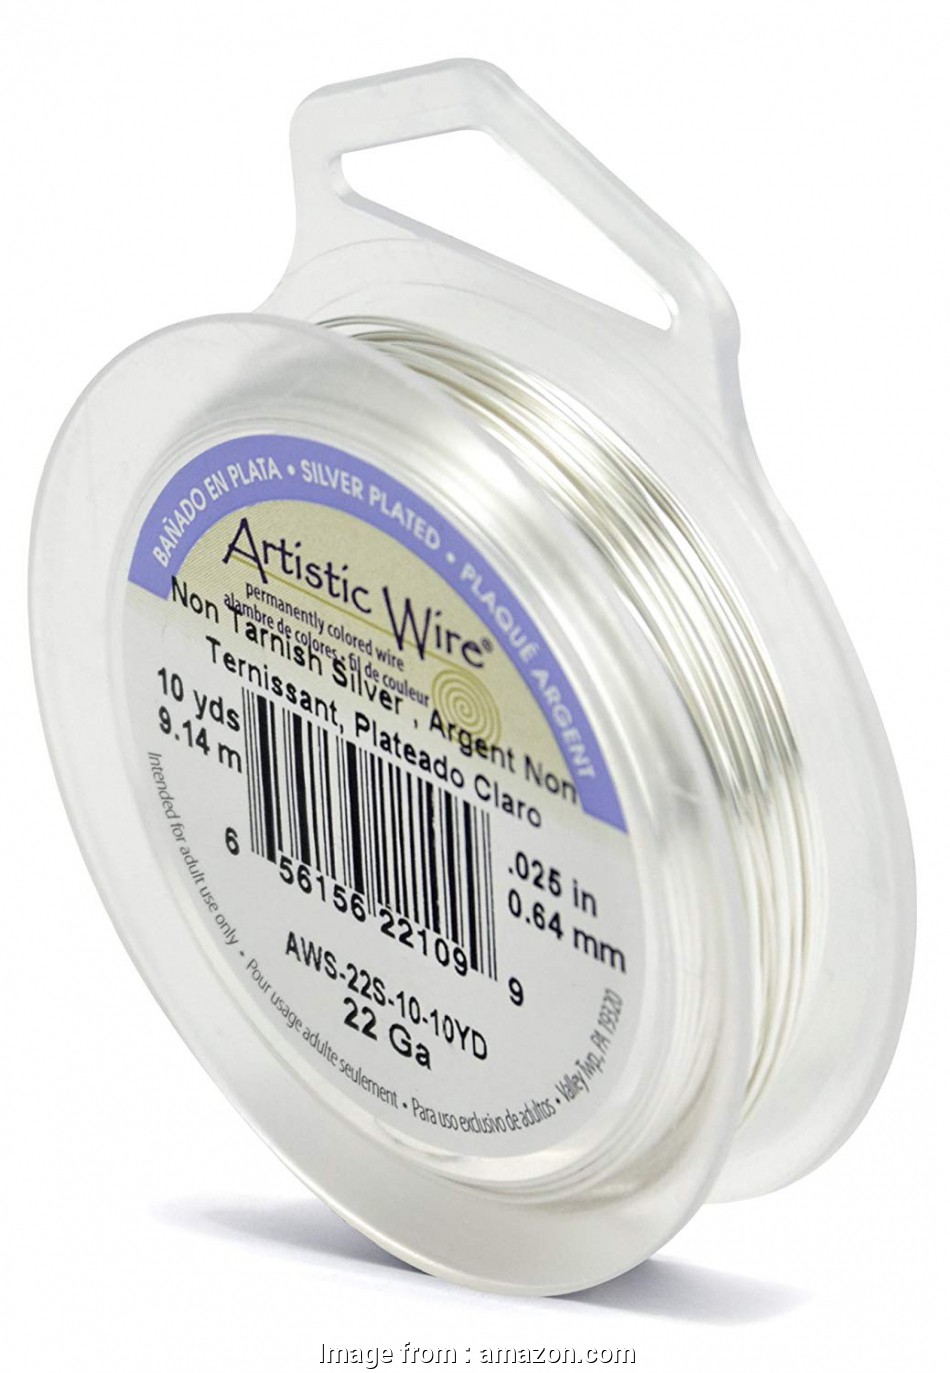 22 gauge artistic wire Amazon.com: Artistic Wire 22-Gauge Tarnish Resistant Silver Wire, 10-Yard 18 Practical 22 Gauge Artistic Wire Images